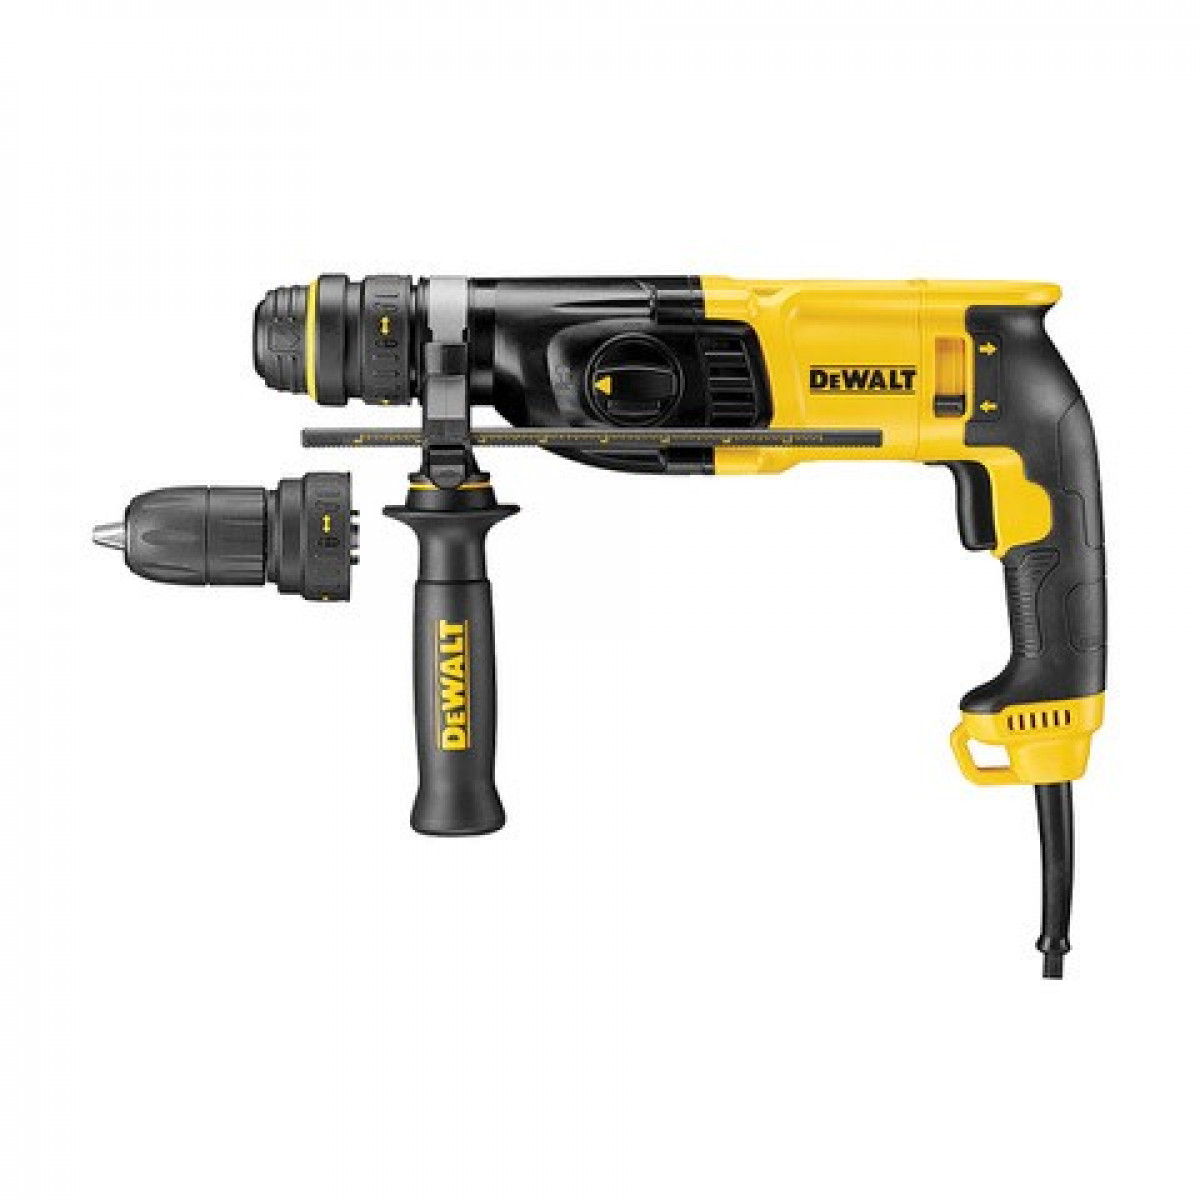 ROTOMARTILLO SDS PLUS 800W D25134K-B2C DEWALT